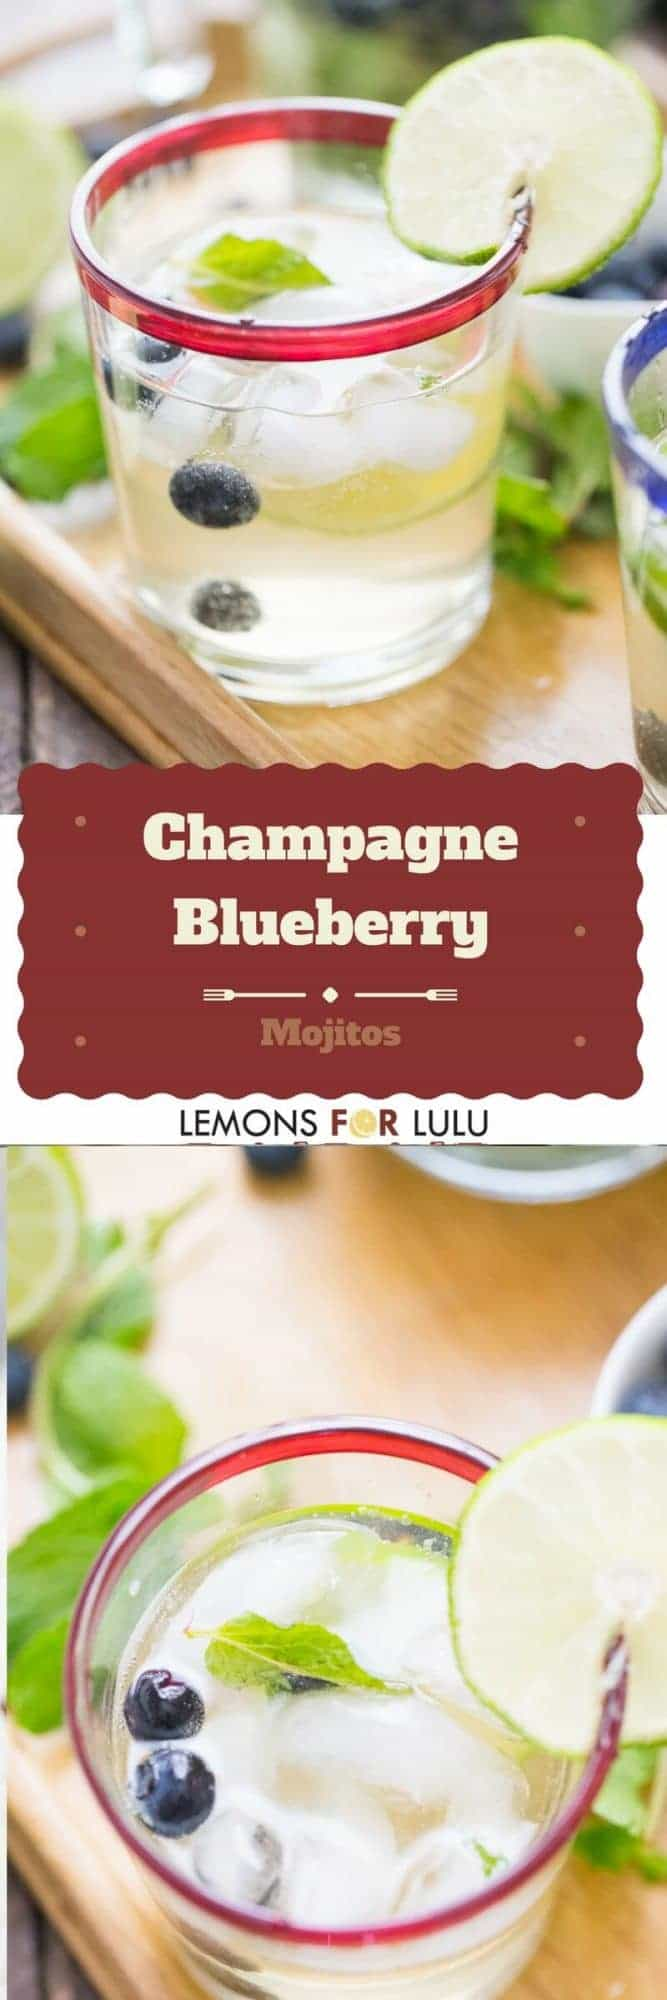 Cool mint and rum makes a mojito delicious, but then adde sweet blueberries and bubbly champagne and you have festive cocktail that everyone will love!